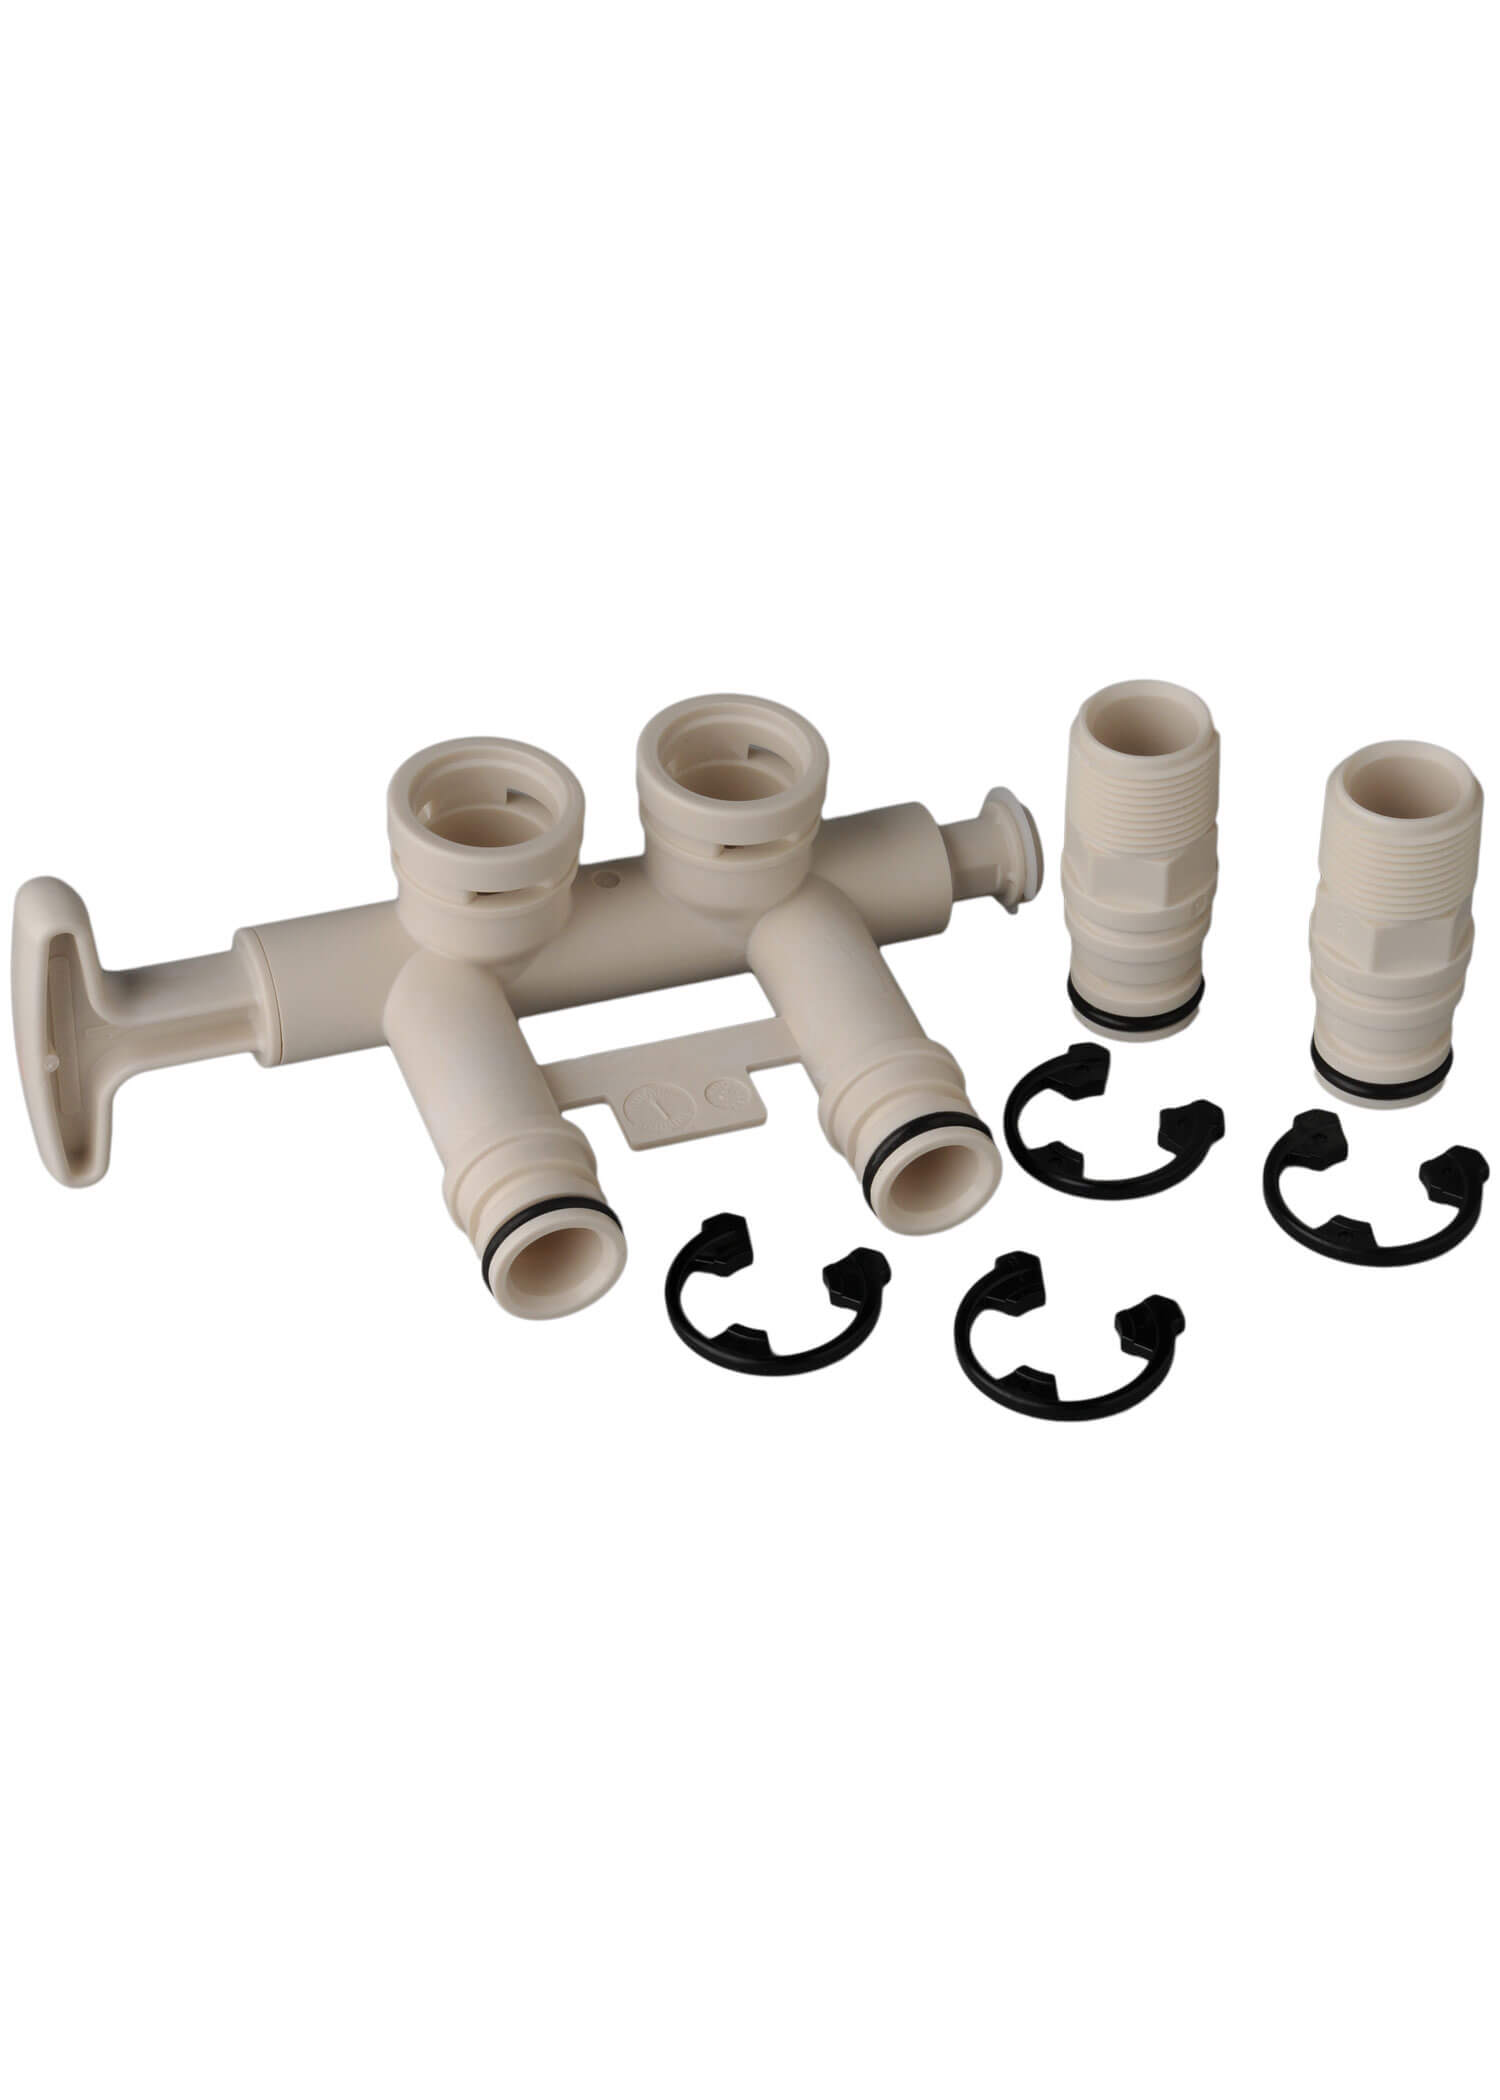 Water Softener Standard Bypass Valve Assembly Part 7345388 Whirlpool Water Solutions